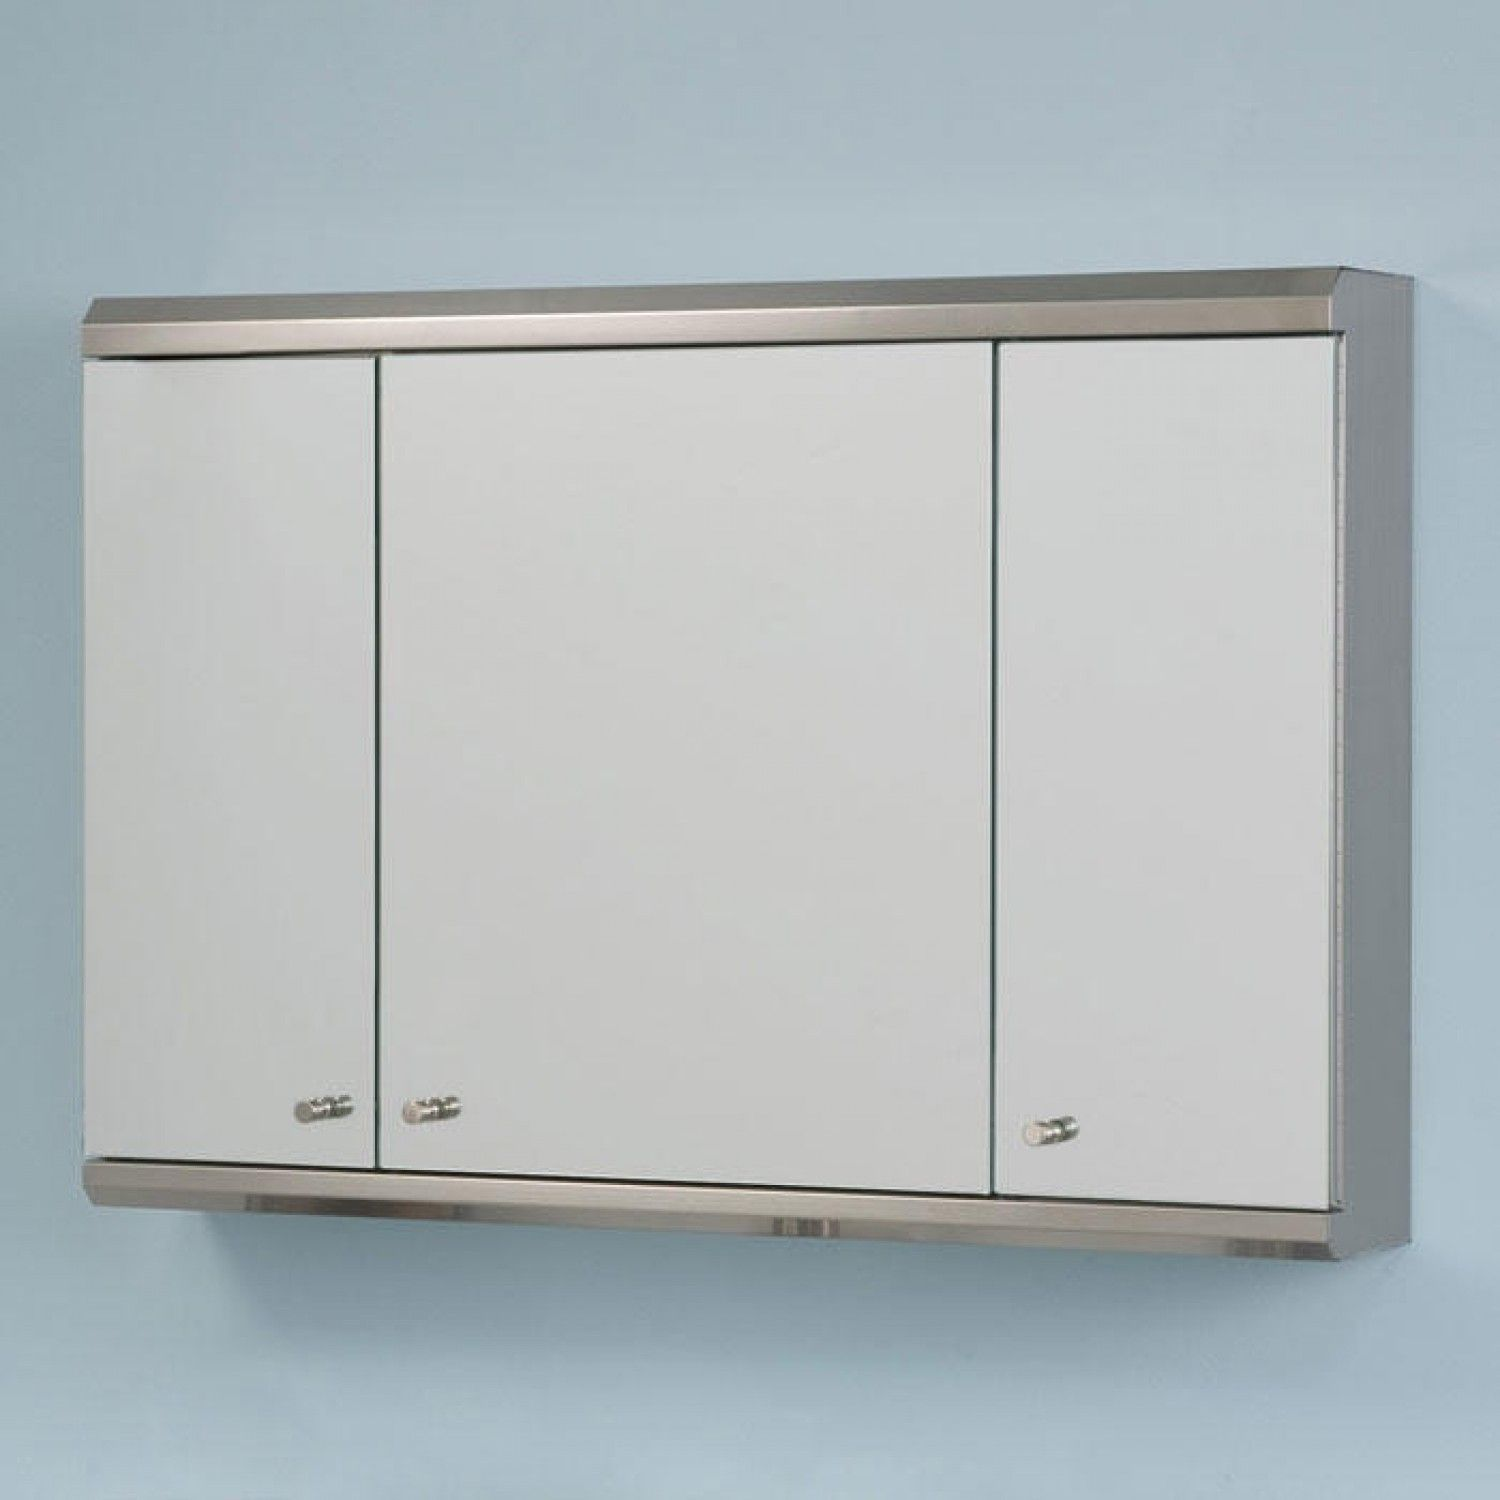 Cosmopolitan Stainless Steel Tri View Medicine Cabinet With Mirror